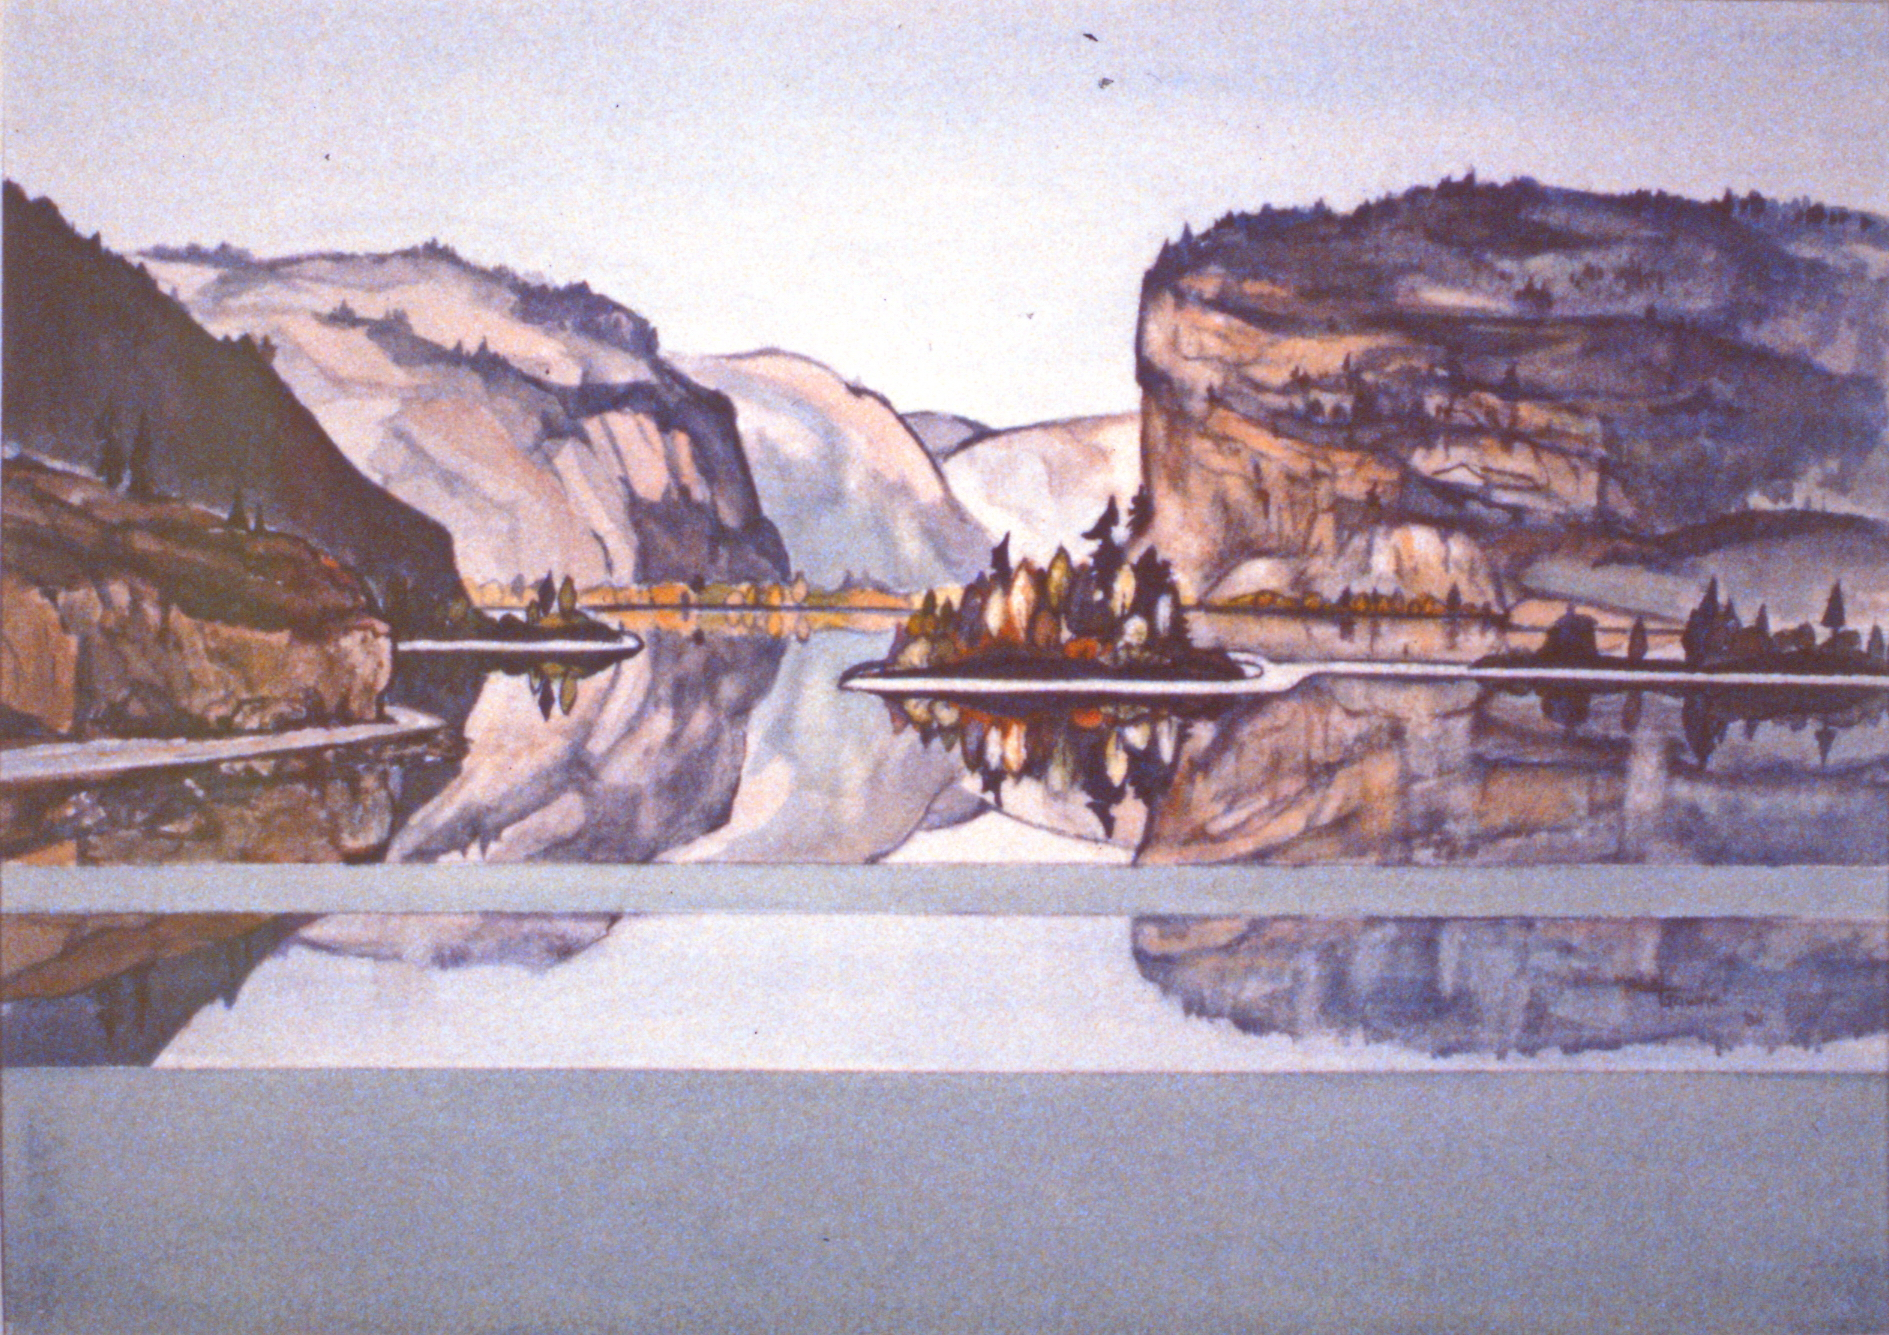 Reflections No. 5 (Vaseaux Lake) , 1984, Mabel Gawne, watercolour on paper, 41.5 x 58 cm, 1986.08.02. Gift of the artist.